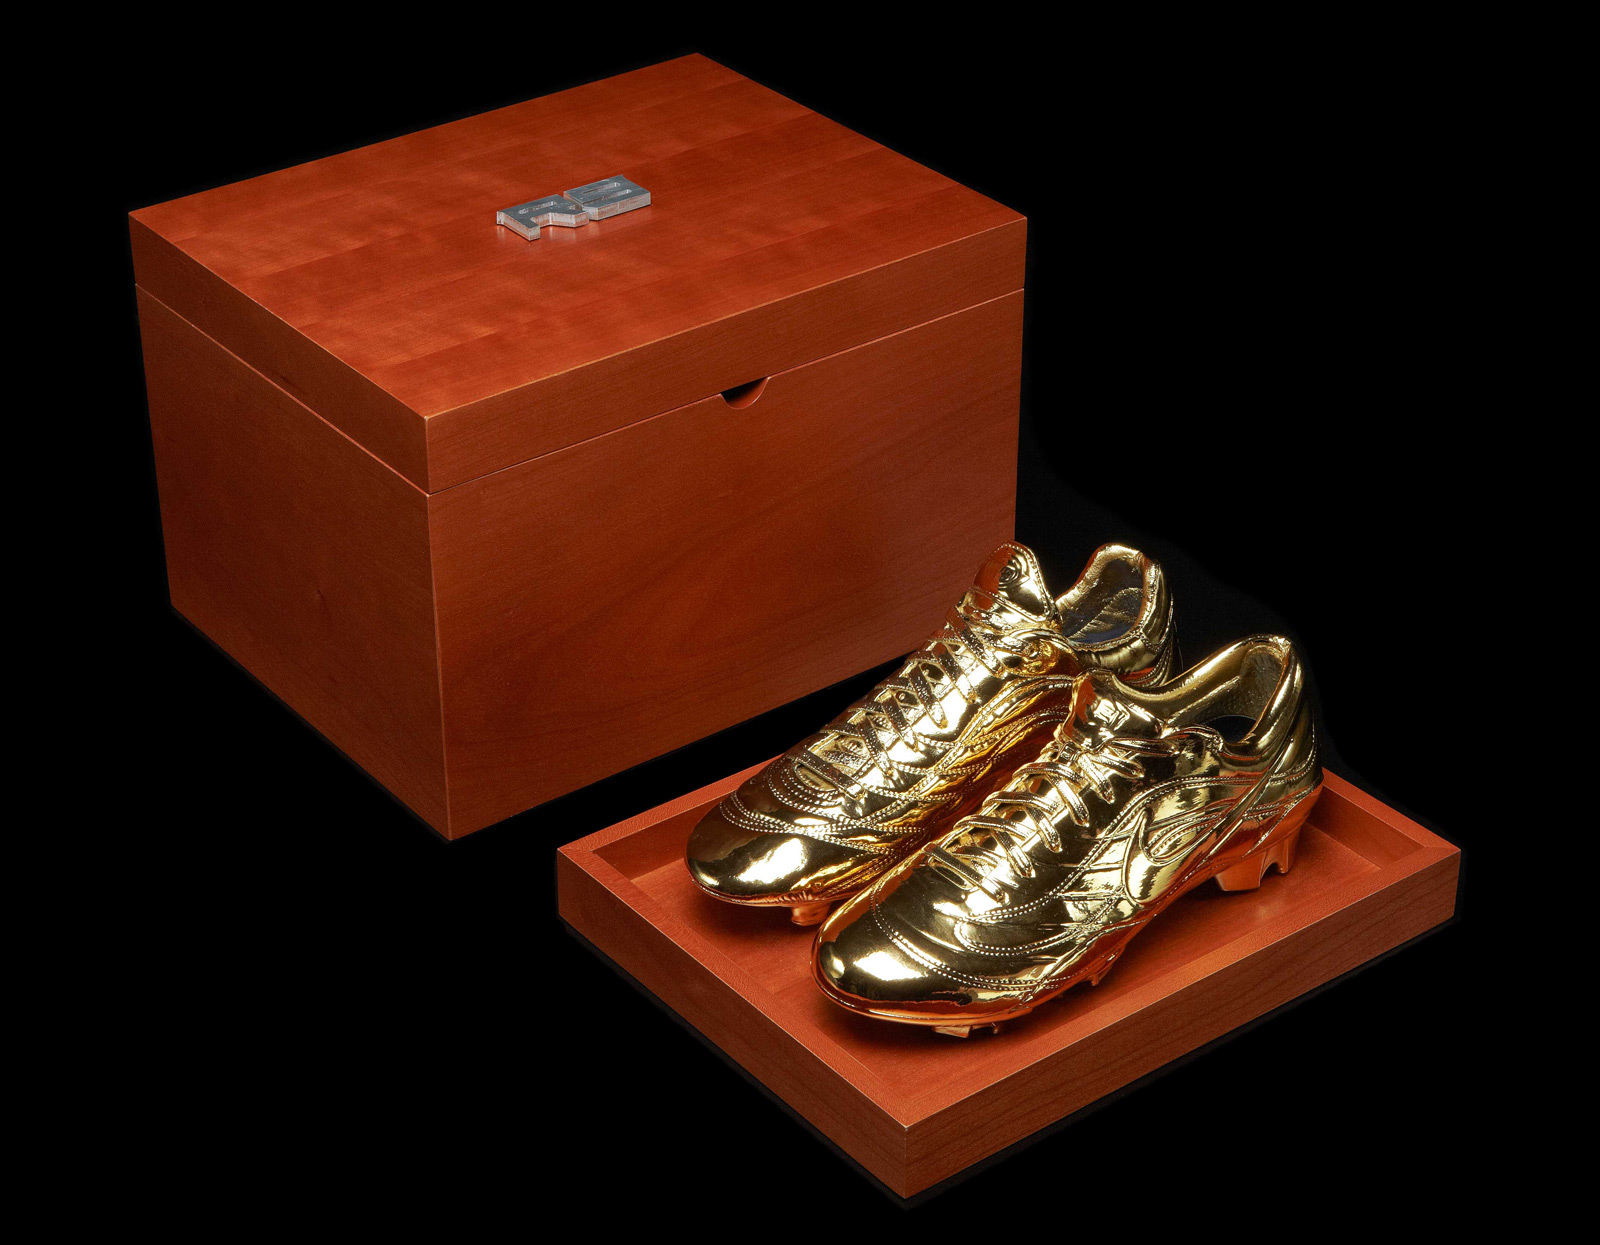 Nike's Gold Mercurial Soccer Boots In Honor To Ronaldo